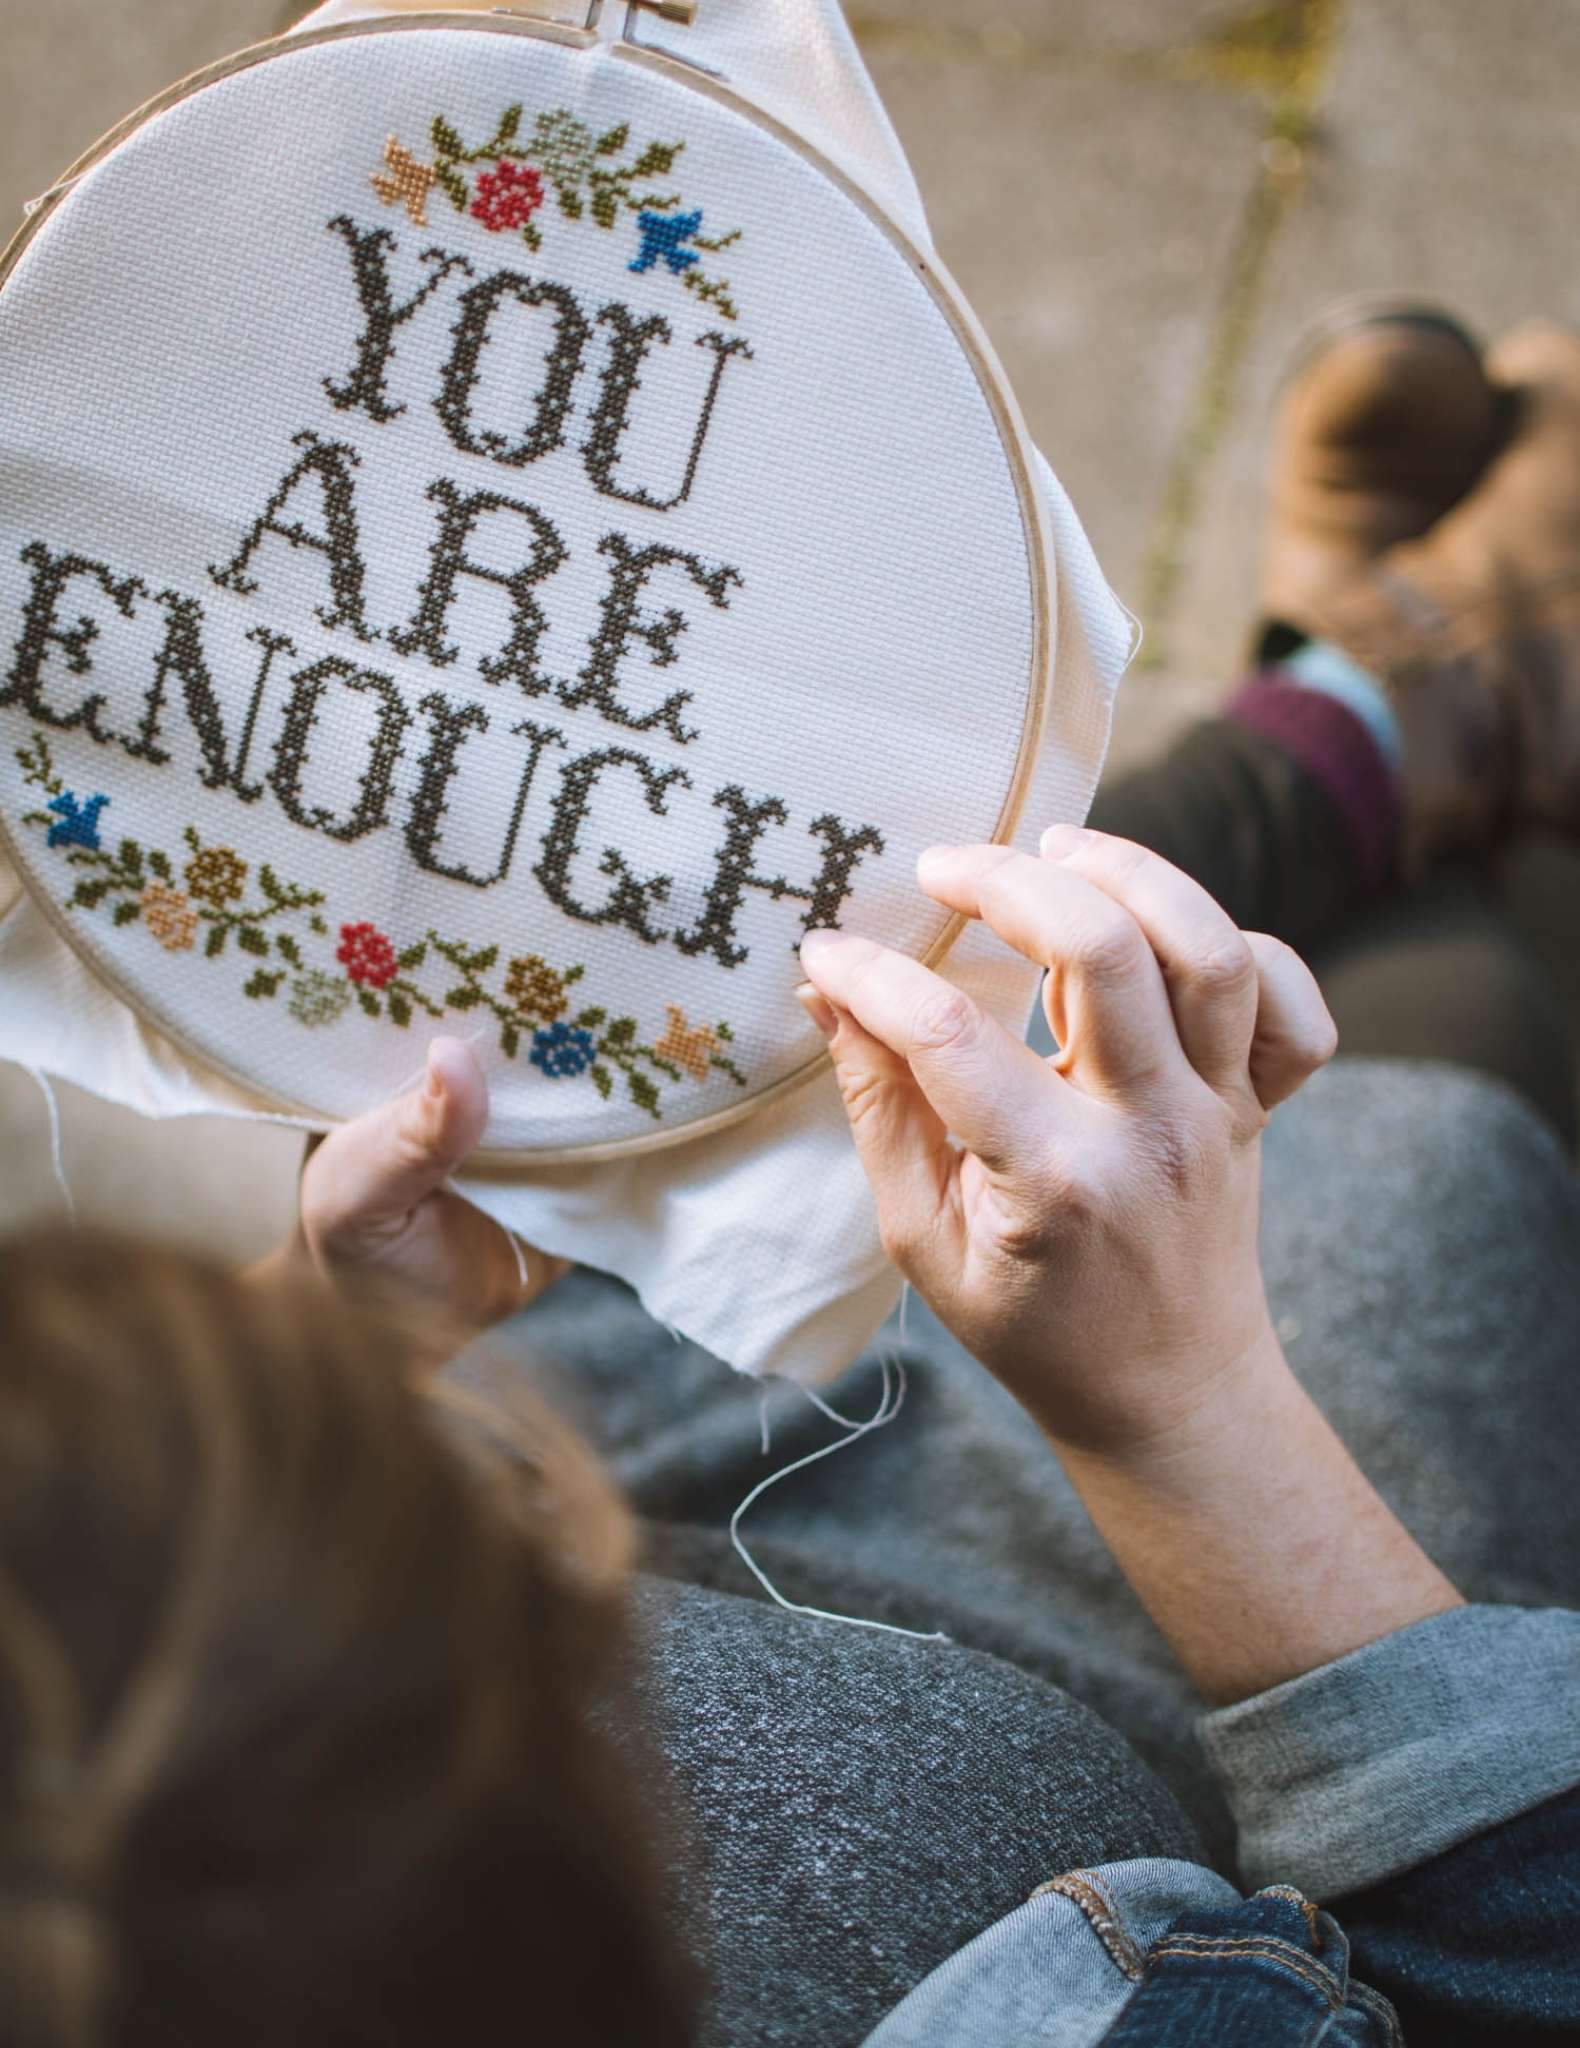 A white model with brown hair embroiders a cross stitch piece in a hoop showing the text 'You are Enough'